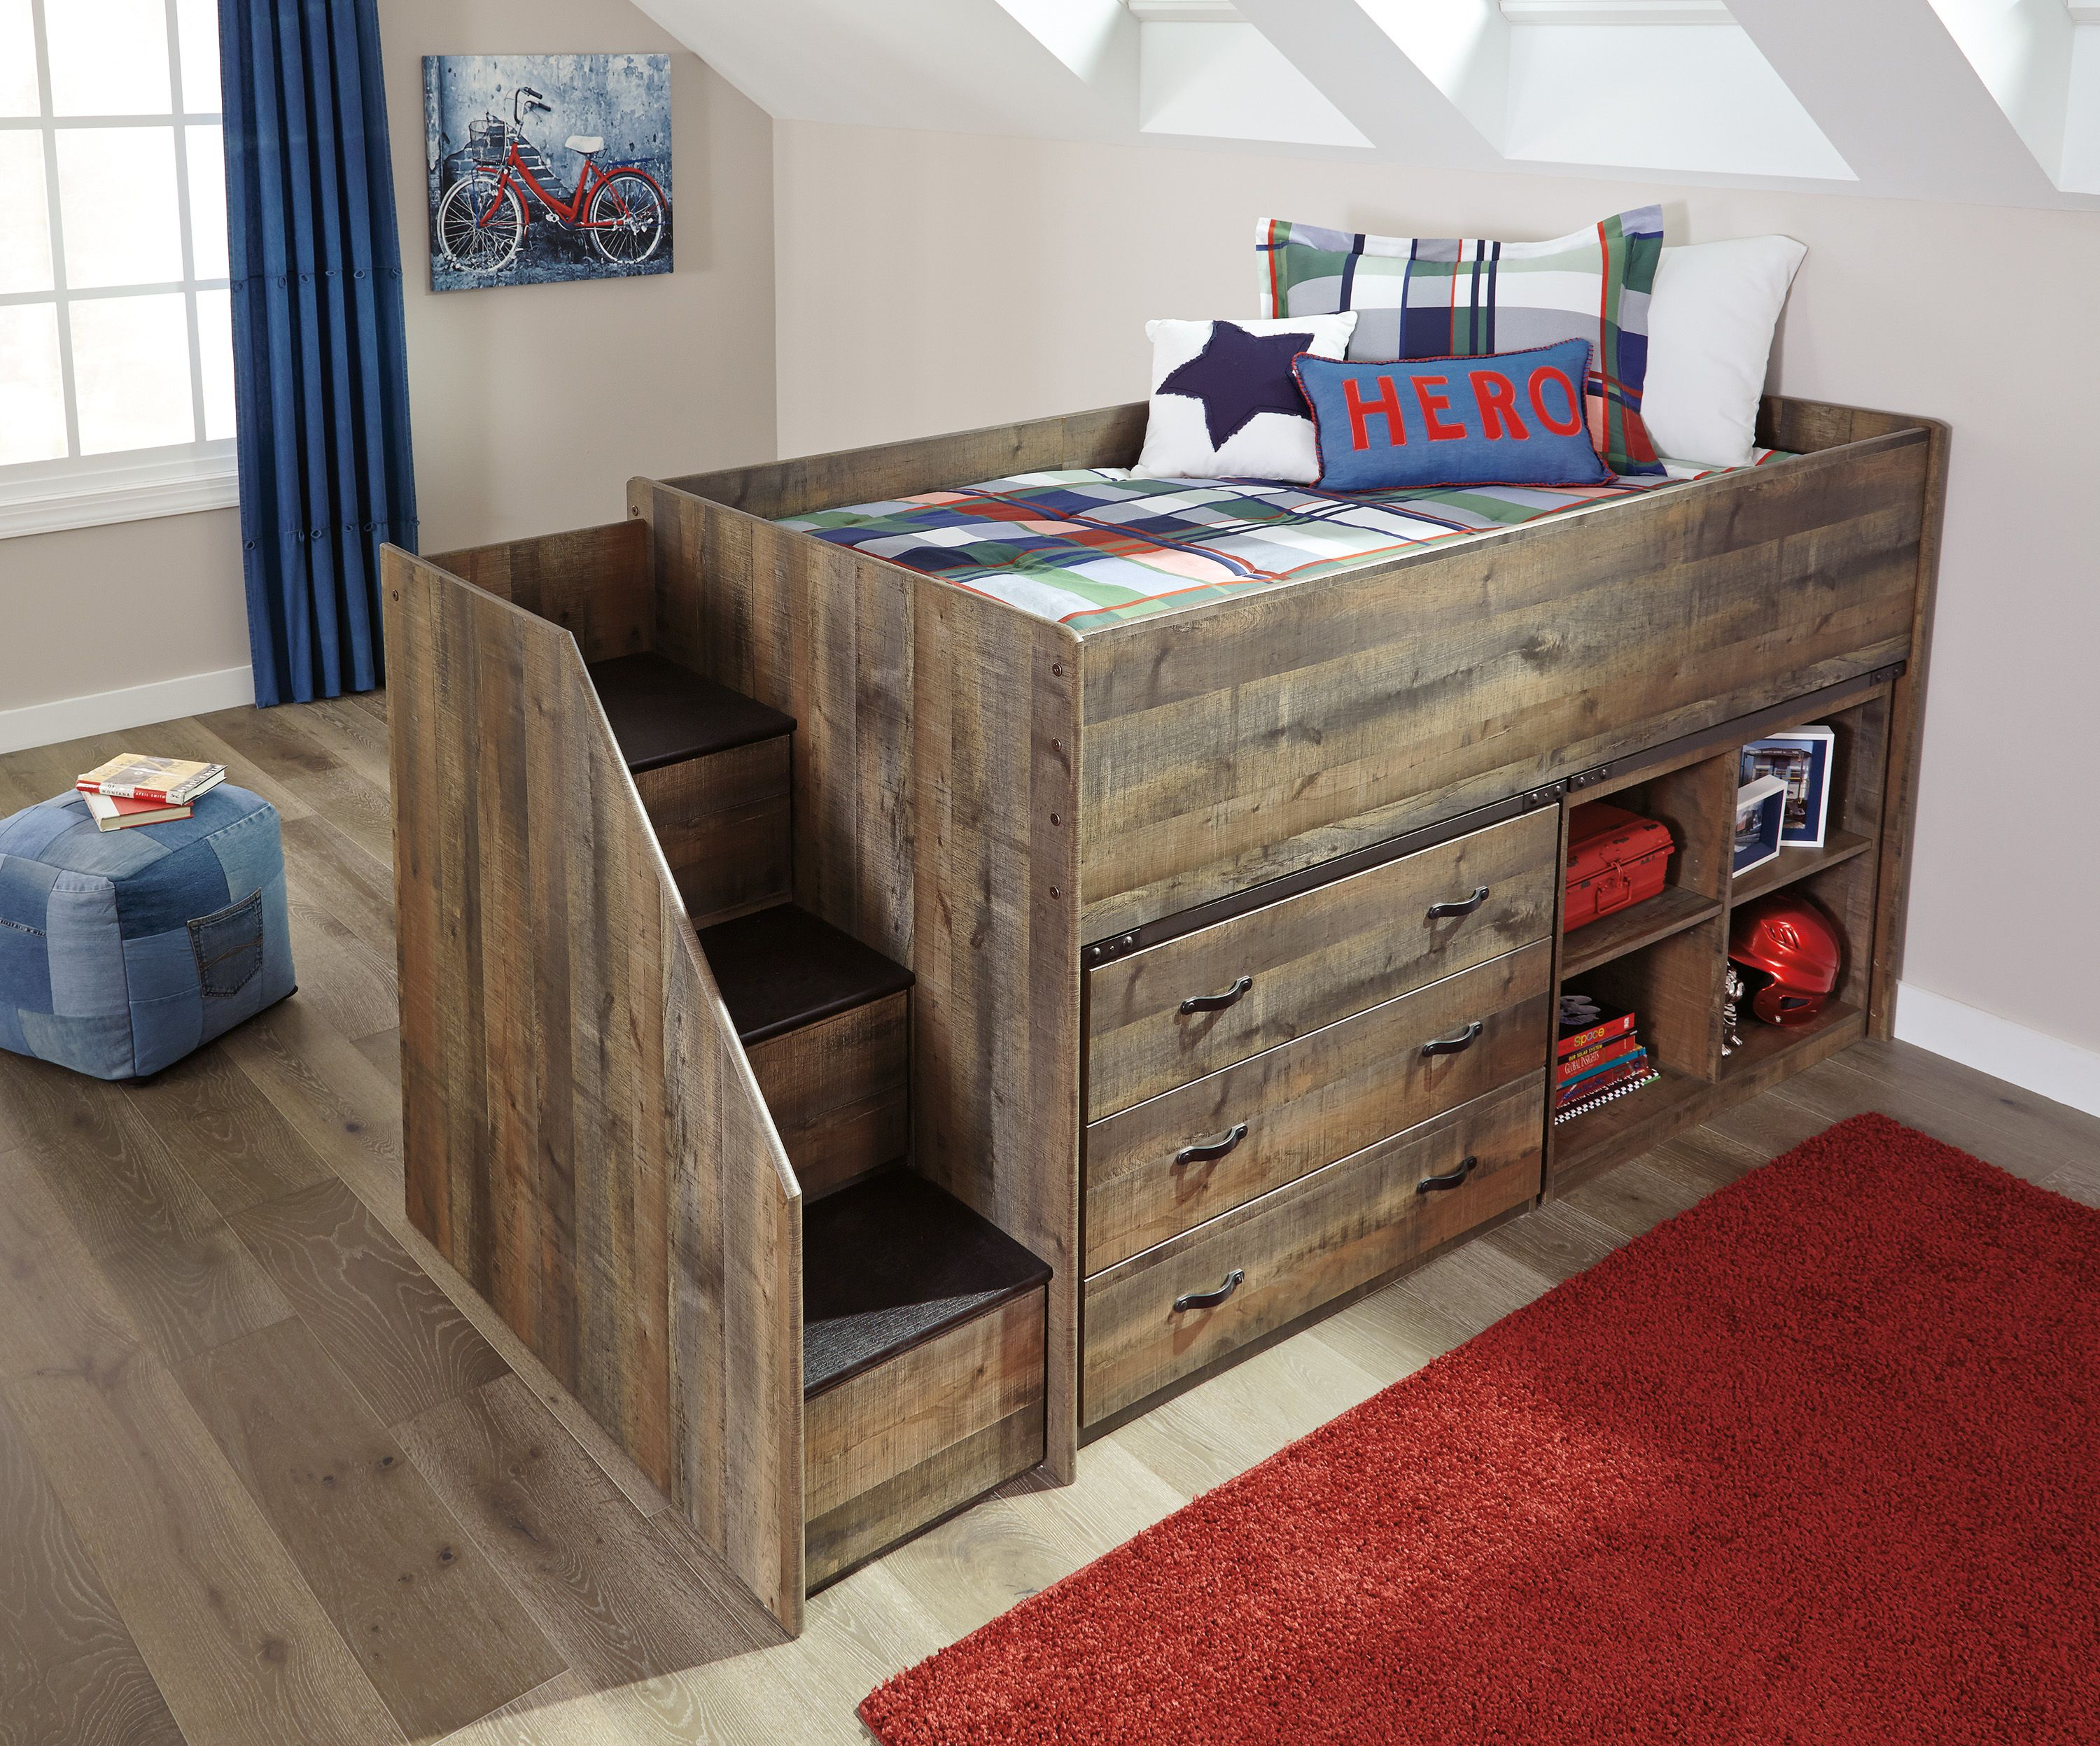 Warm Rustic Plank Finish Over Replicated Oak Grain Tops Of Cases And Headboard Footboard Panels